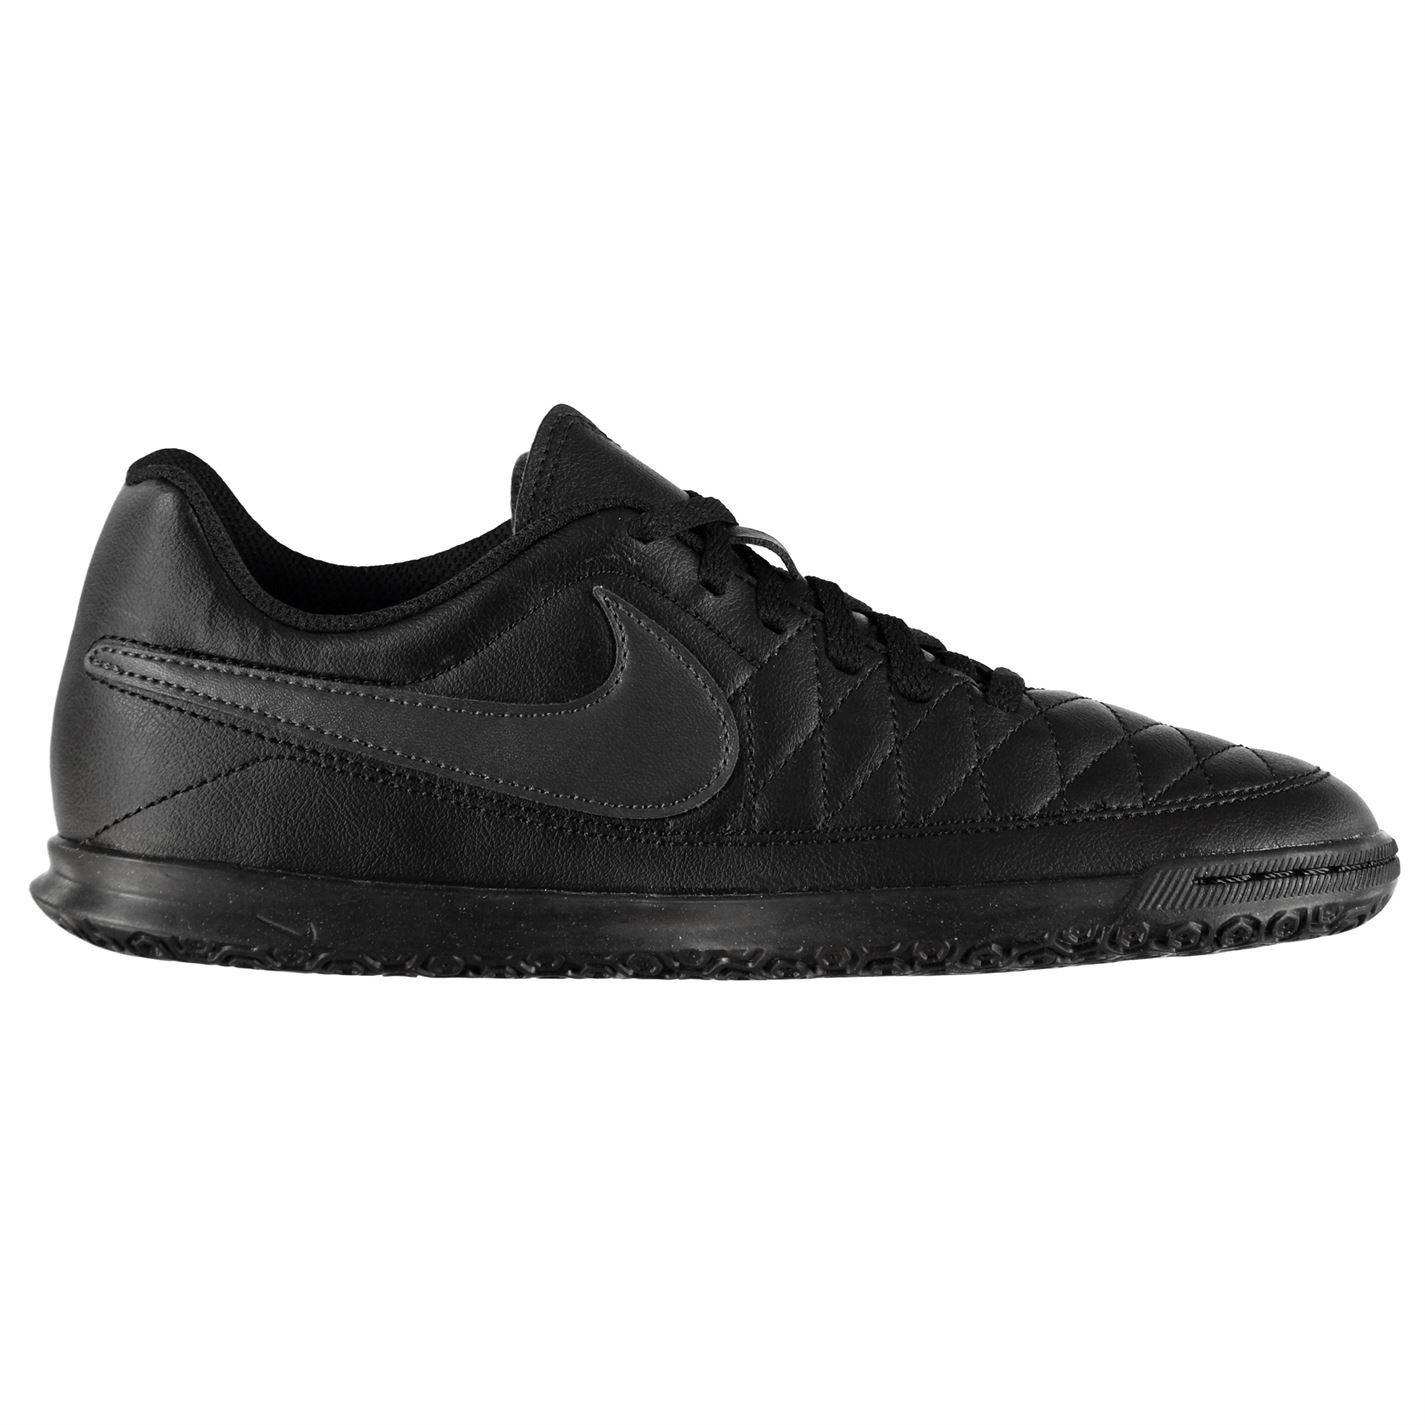 Nike-majestry-Indoor-Football-Baskets-Pour-Homme-Football-Futsal-Chaussures-Baskets-Bottes miniature 7